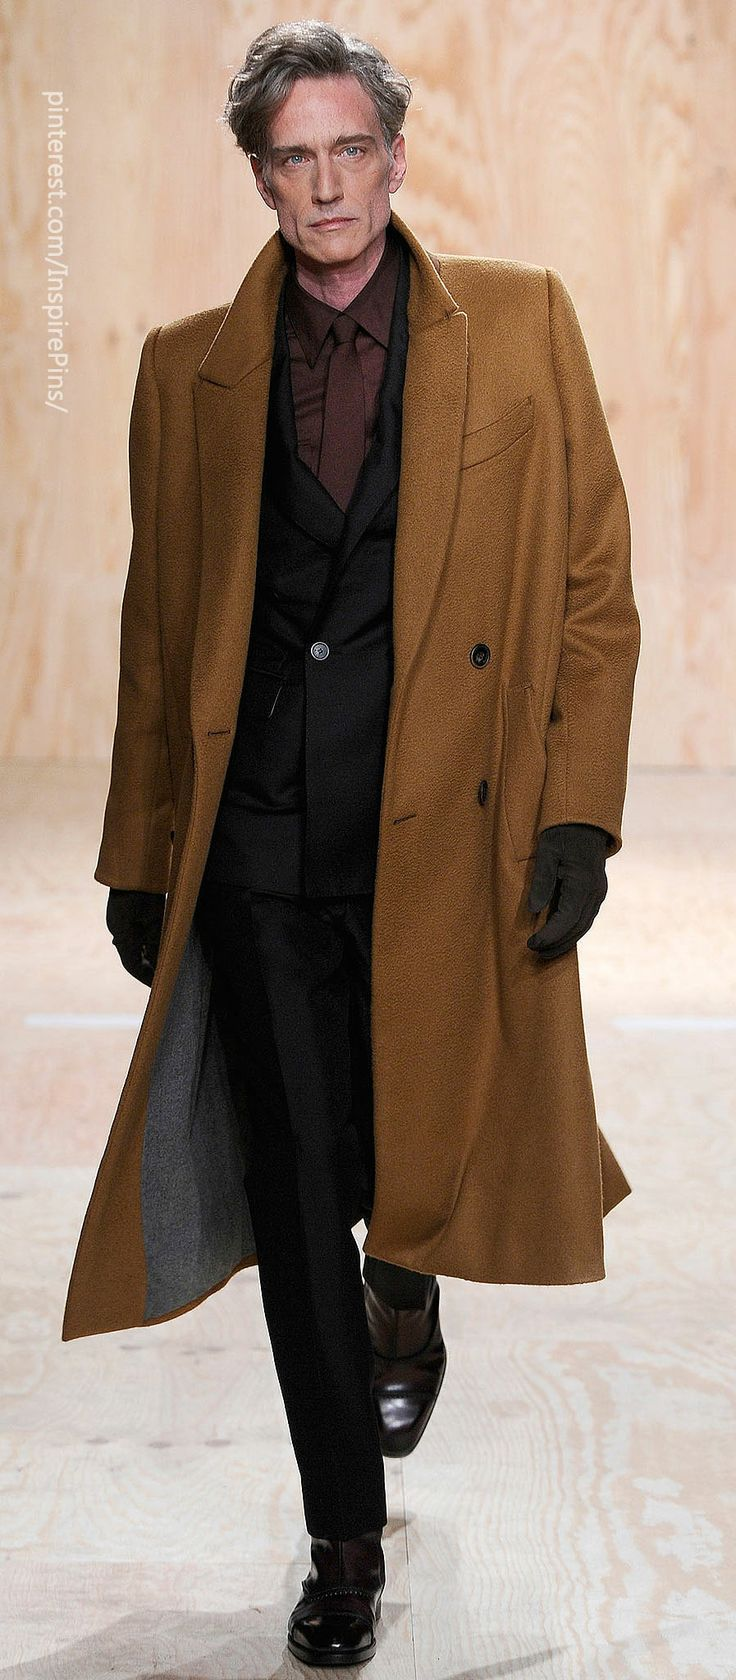 Berluti ///this coat....like the ones Mulder used to swagger off in the XFiles....with a big blouson back and moves when you walk,   also love the curry color of this marvelous coat!!